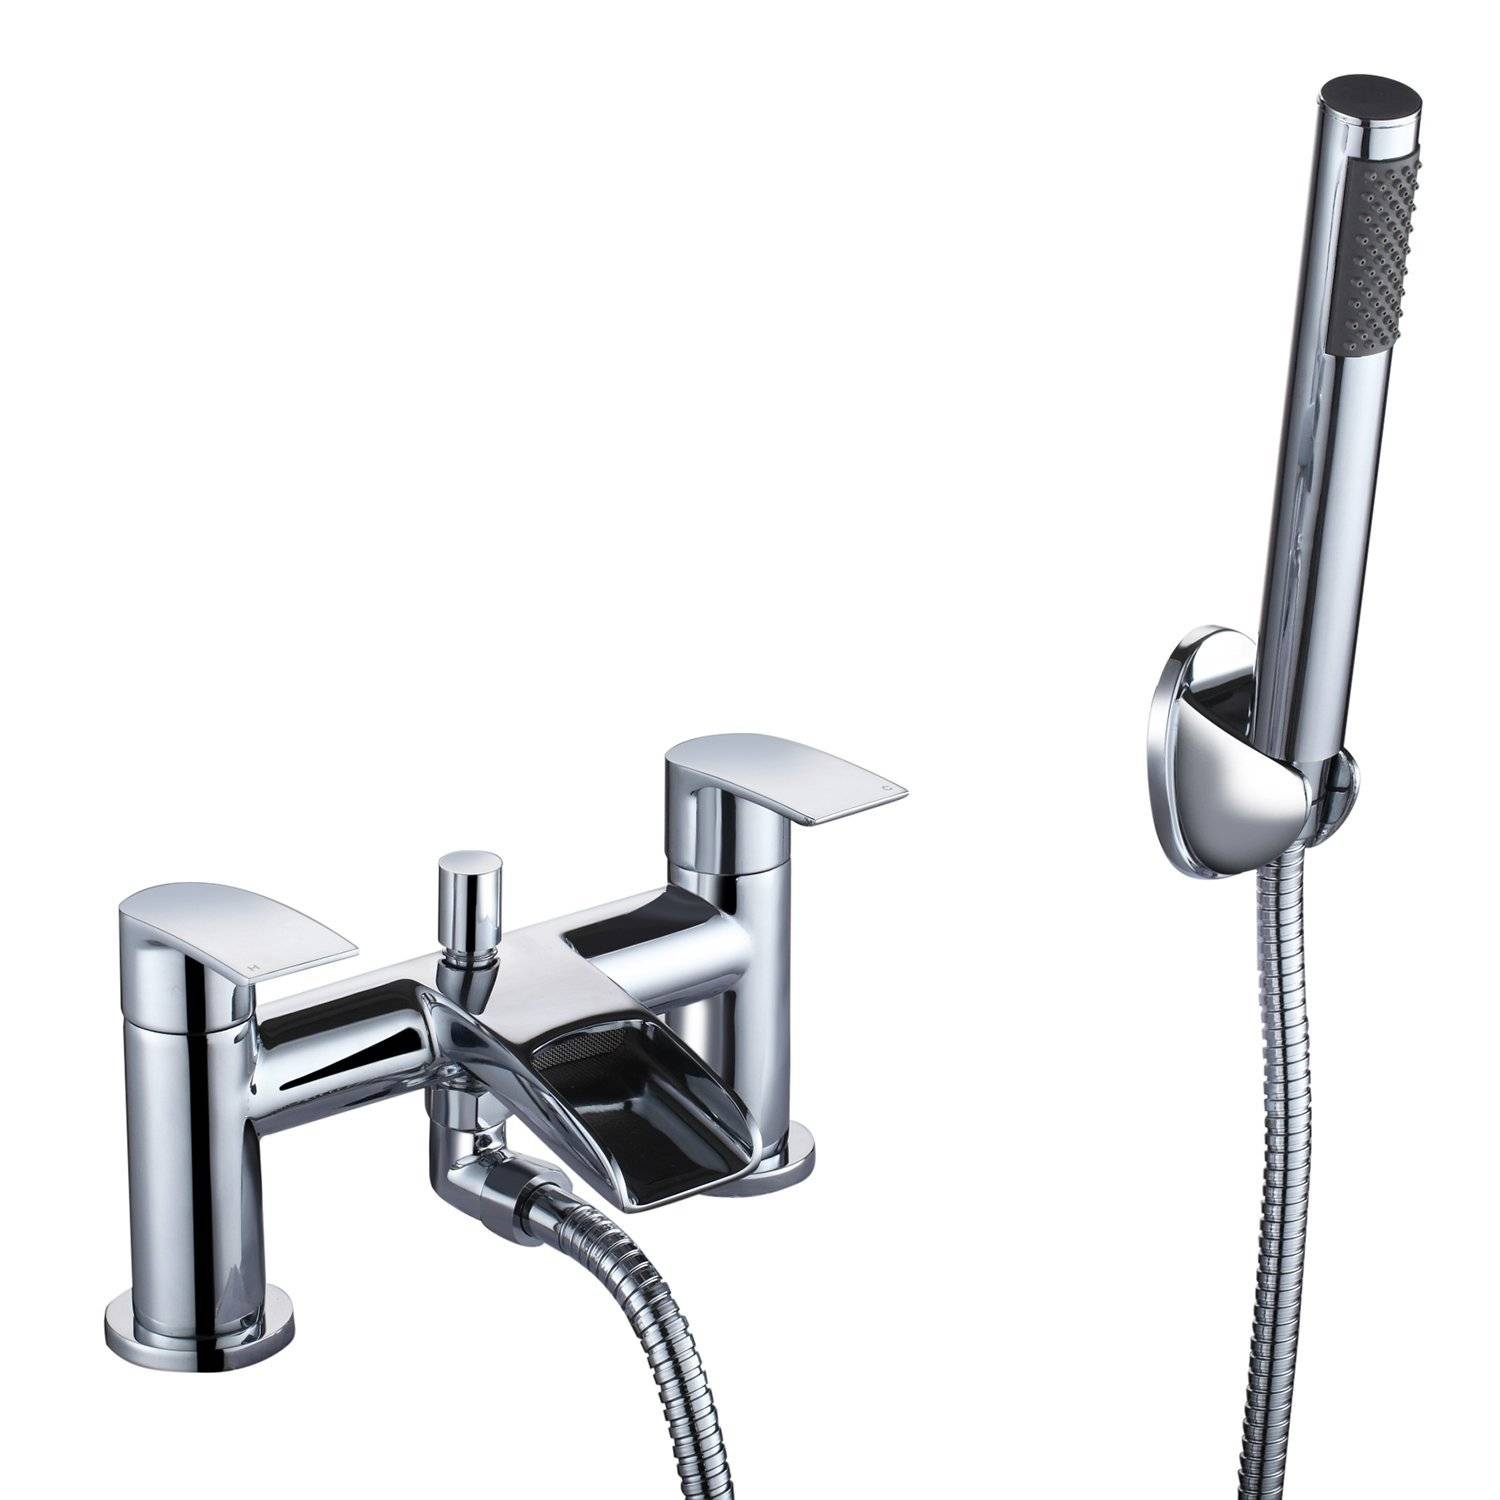 Hapilife Waterfall Bathroom Tap Chrome with Handheld Shower Head